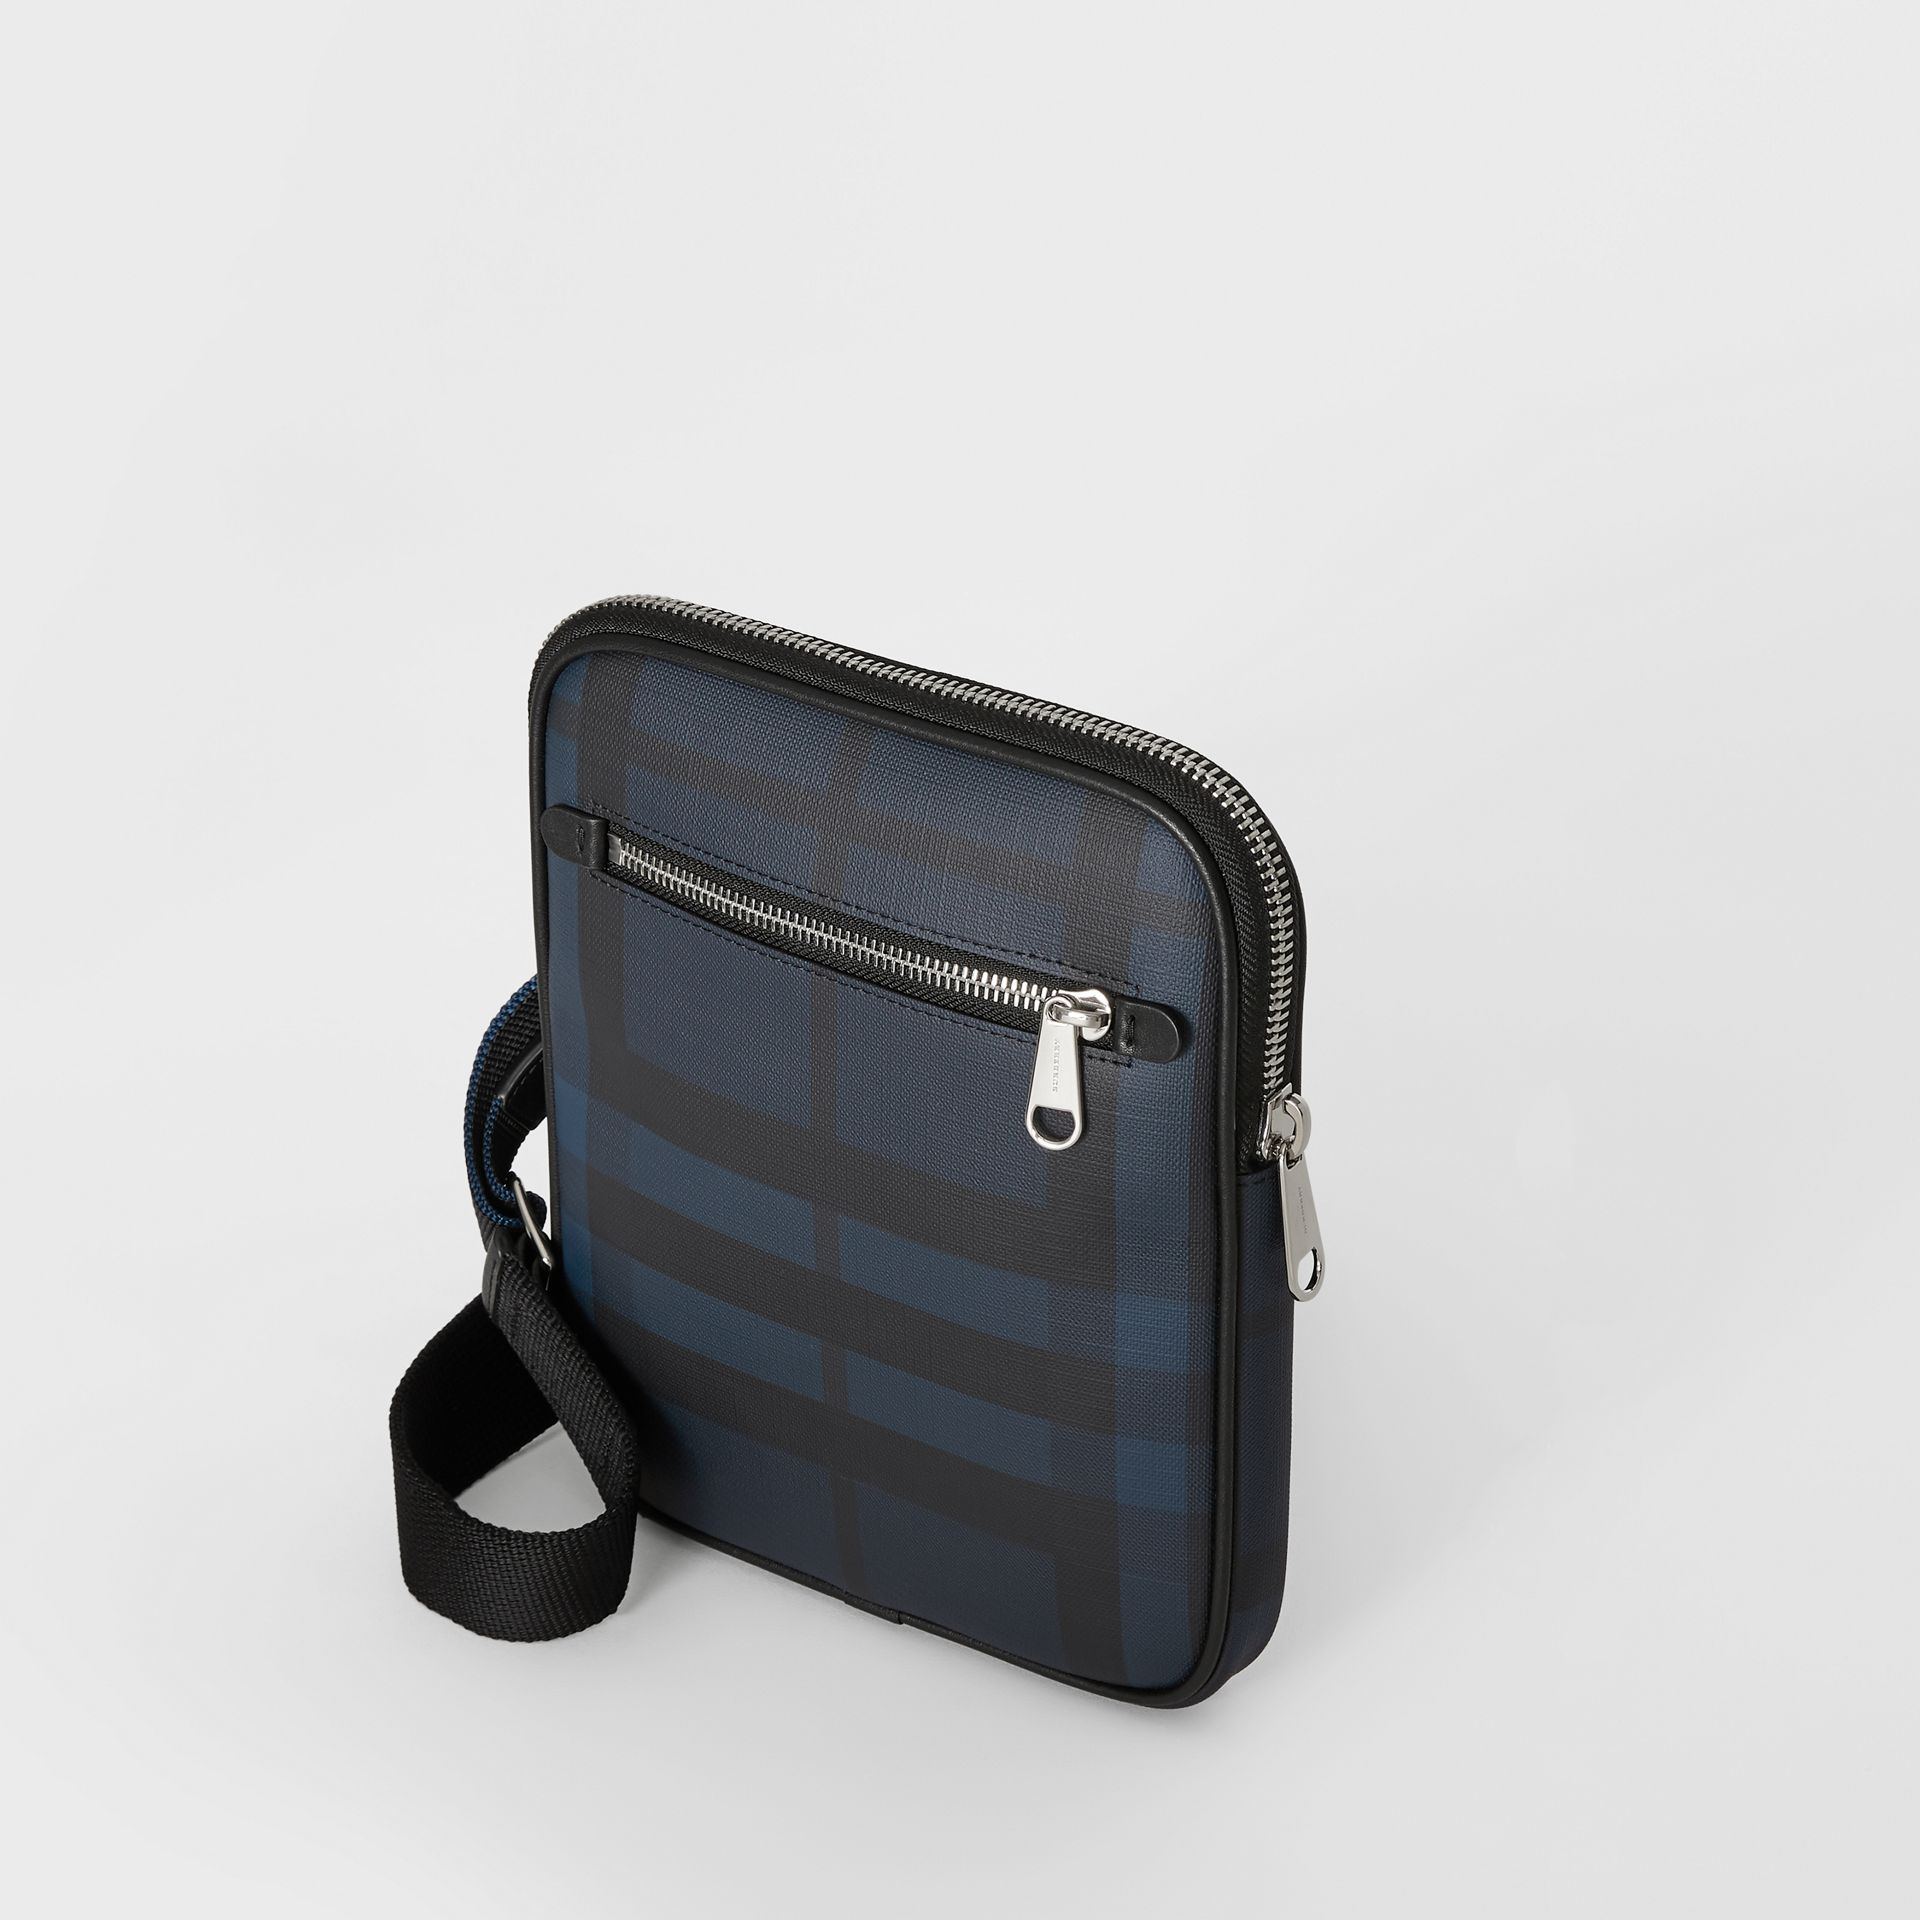 Slim London Check Crossbody Bag in Navy/black - Men | Burberry - gallery image 4